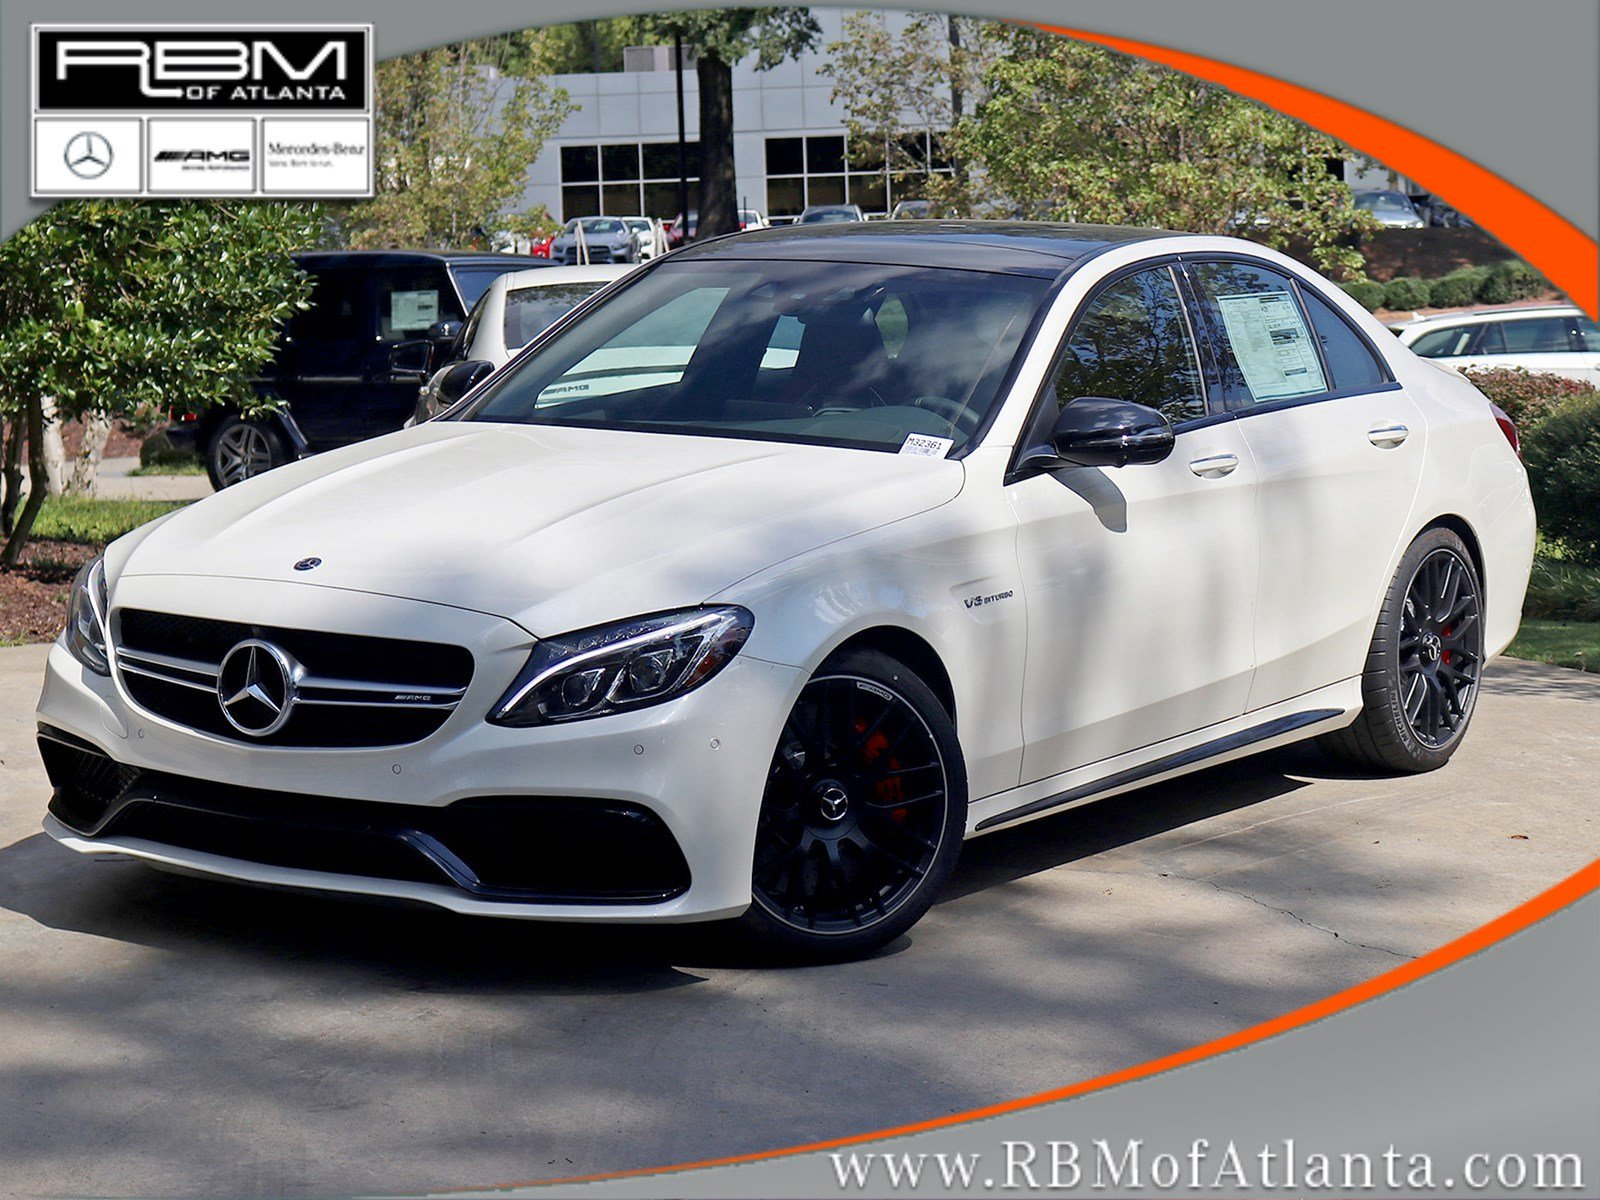 2018 mercedes benz c class. modren mercedes new 2018 mercedesbenz cclass c 63 s amg sedan in mercedes benz c class